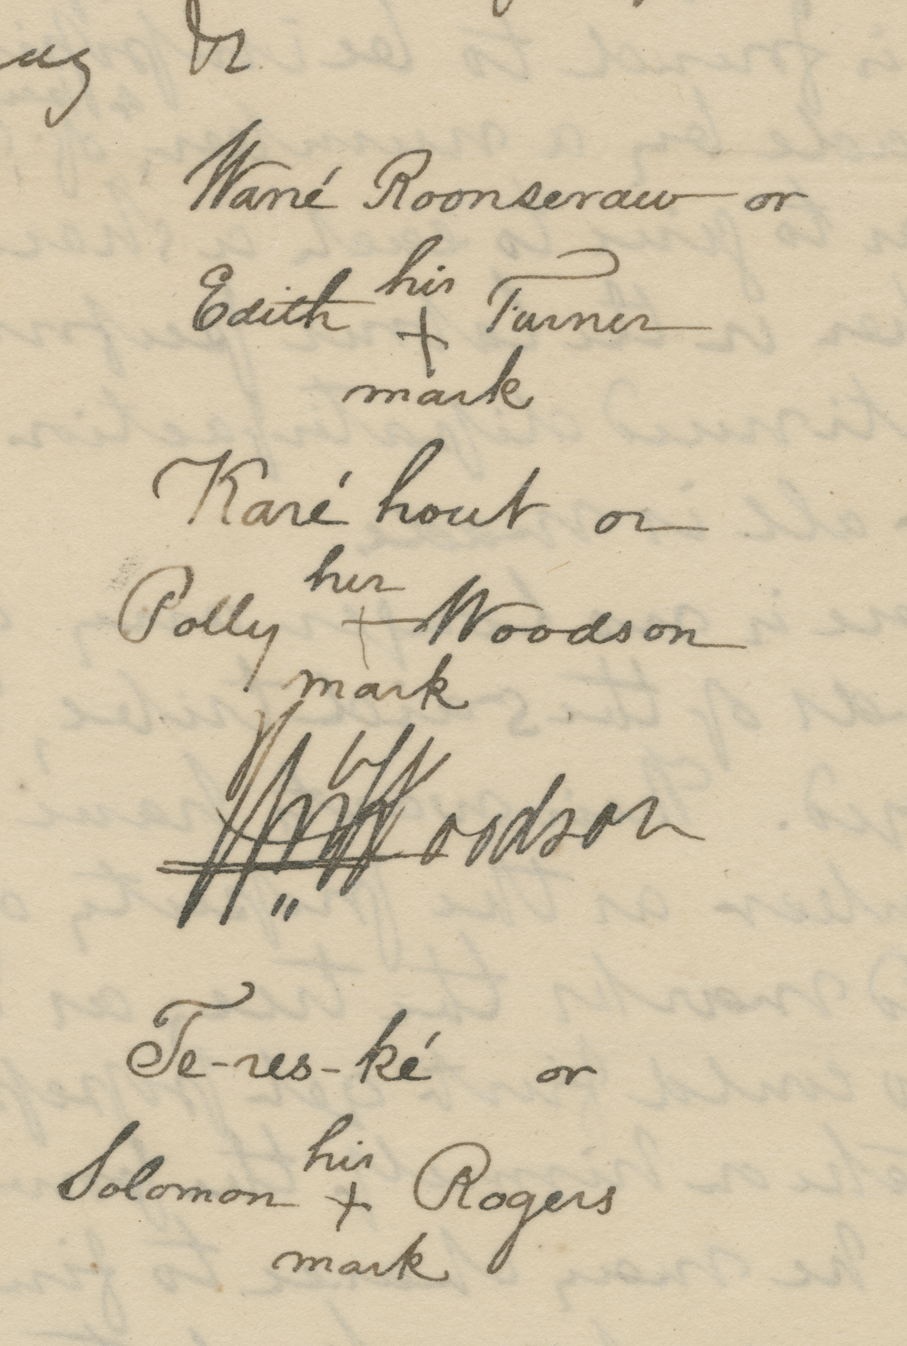 Turner's signature mark on petition of the Nottoway Indians to the Virginia General Assembly, in Legislative Petitions, Southampton County (received 11 December 1821), Accession 36121, Library of Virginia.